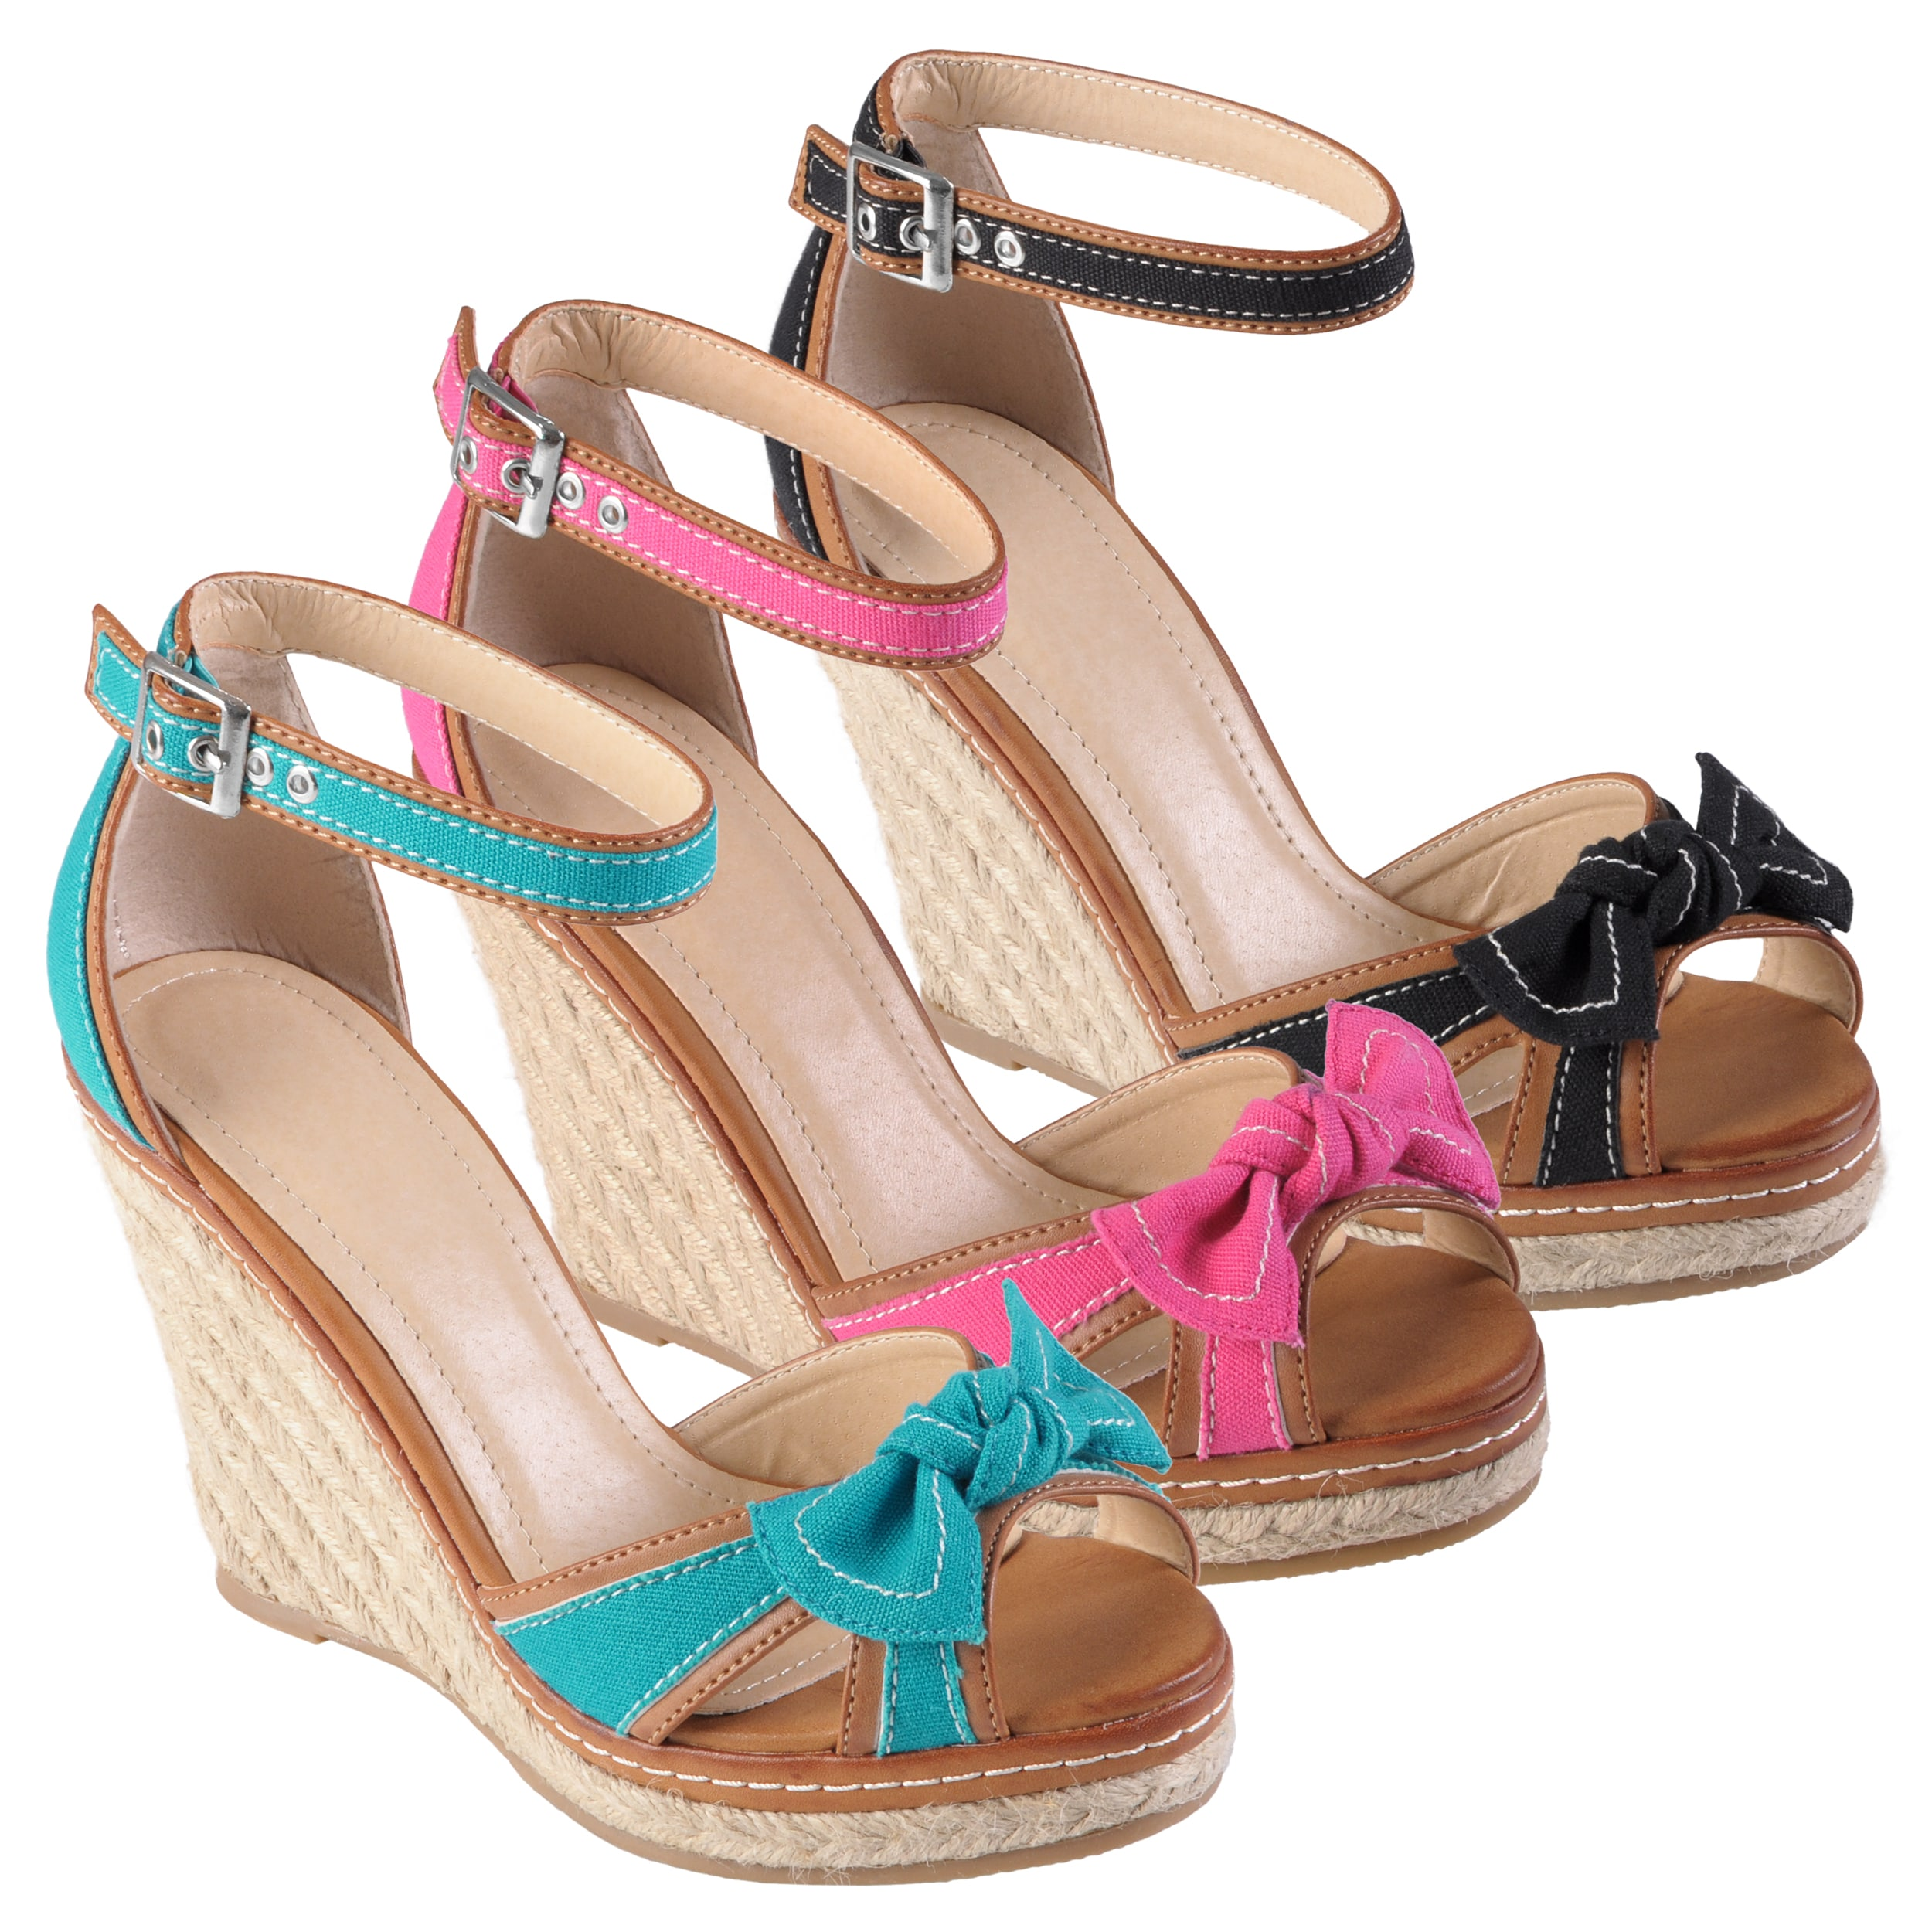 Journee Collection Women's 'Pinot-03' Bow Espadrille Wedges